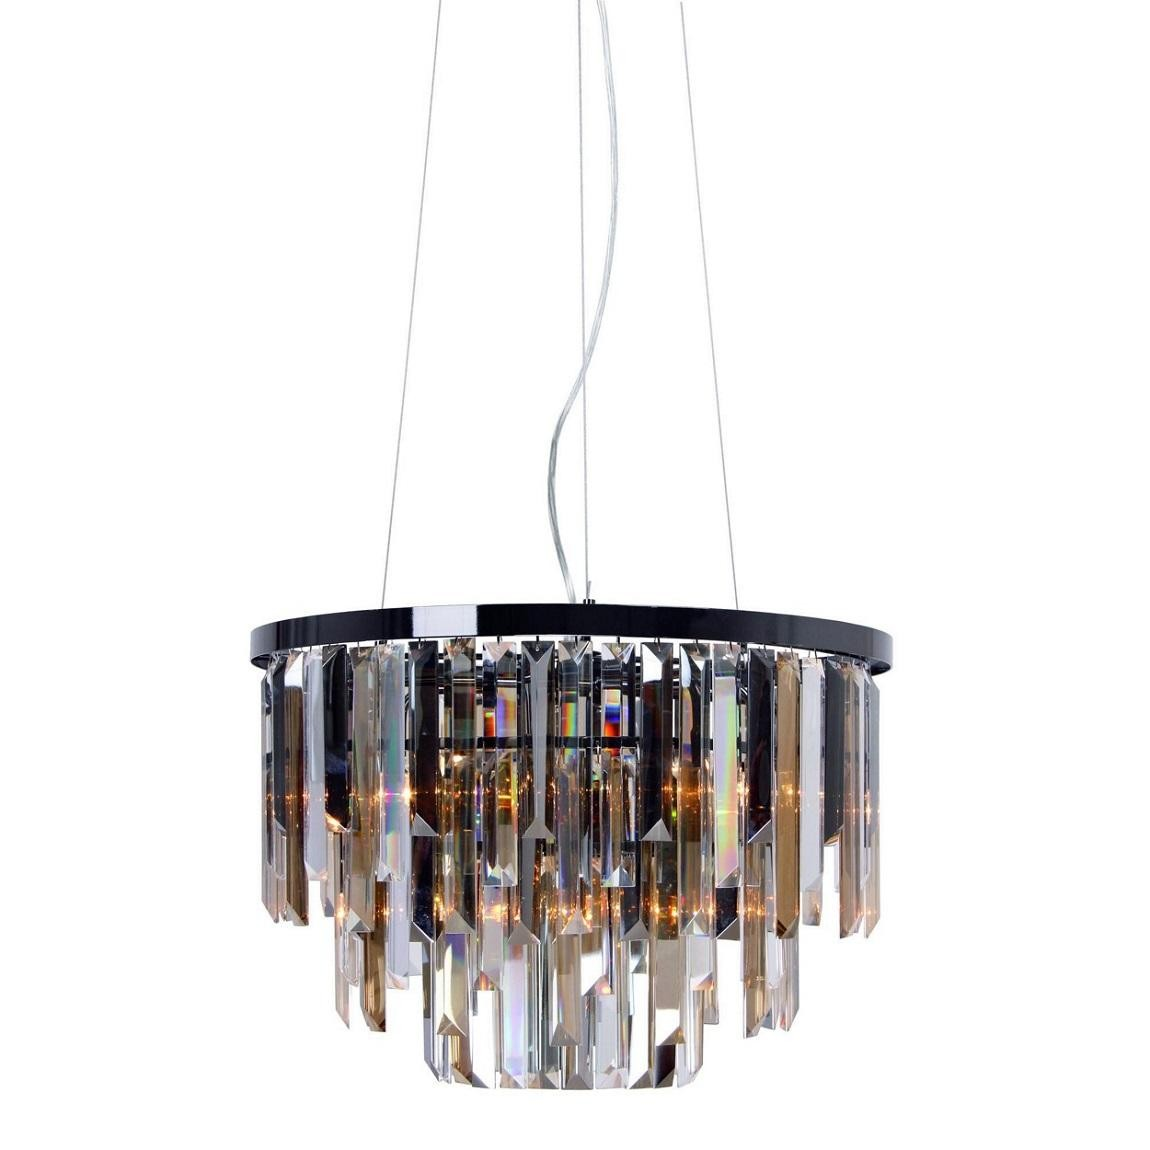 Debenhams Home Collection 'Camila' Pendant Tiered Ceiling